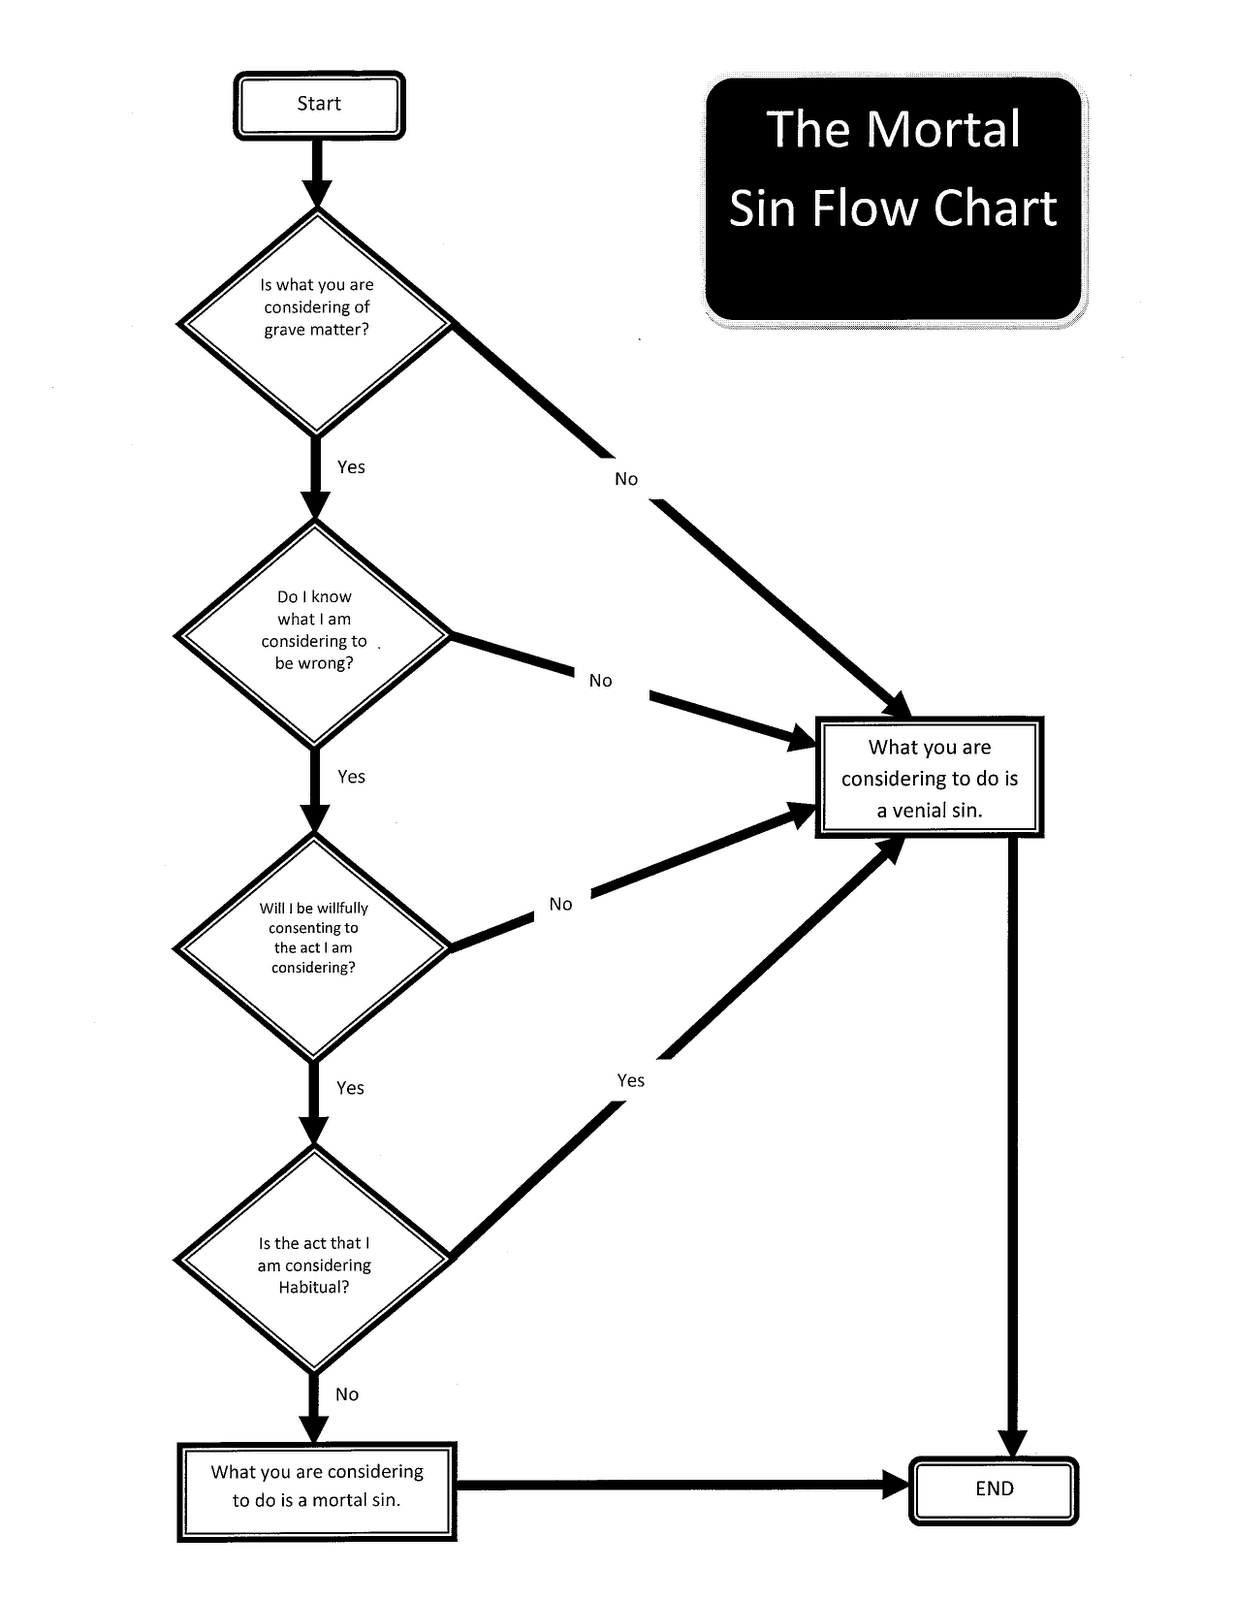 Alive and young mortal sin flow chart i got really tired of my students asking if such and such is a mortal sin no matter how many times we went over what makes something a mortal sin nvjuhfo Image collections